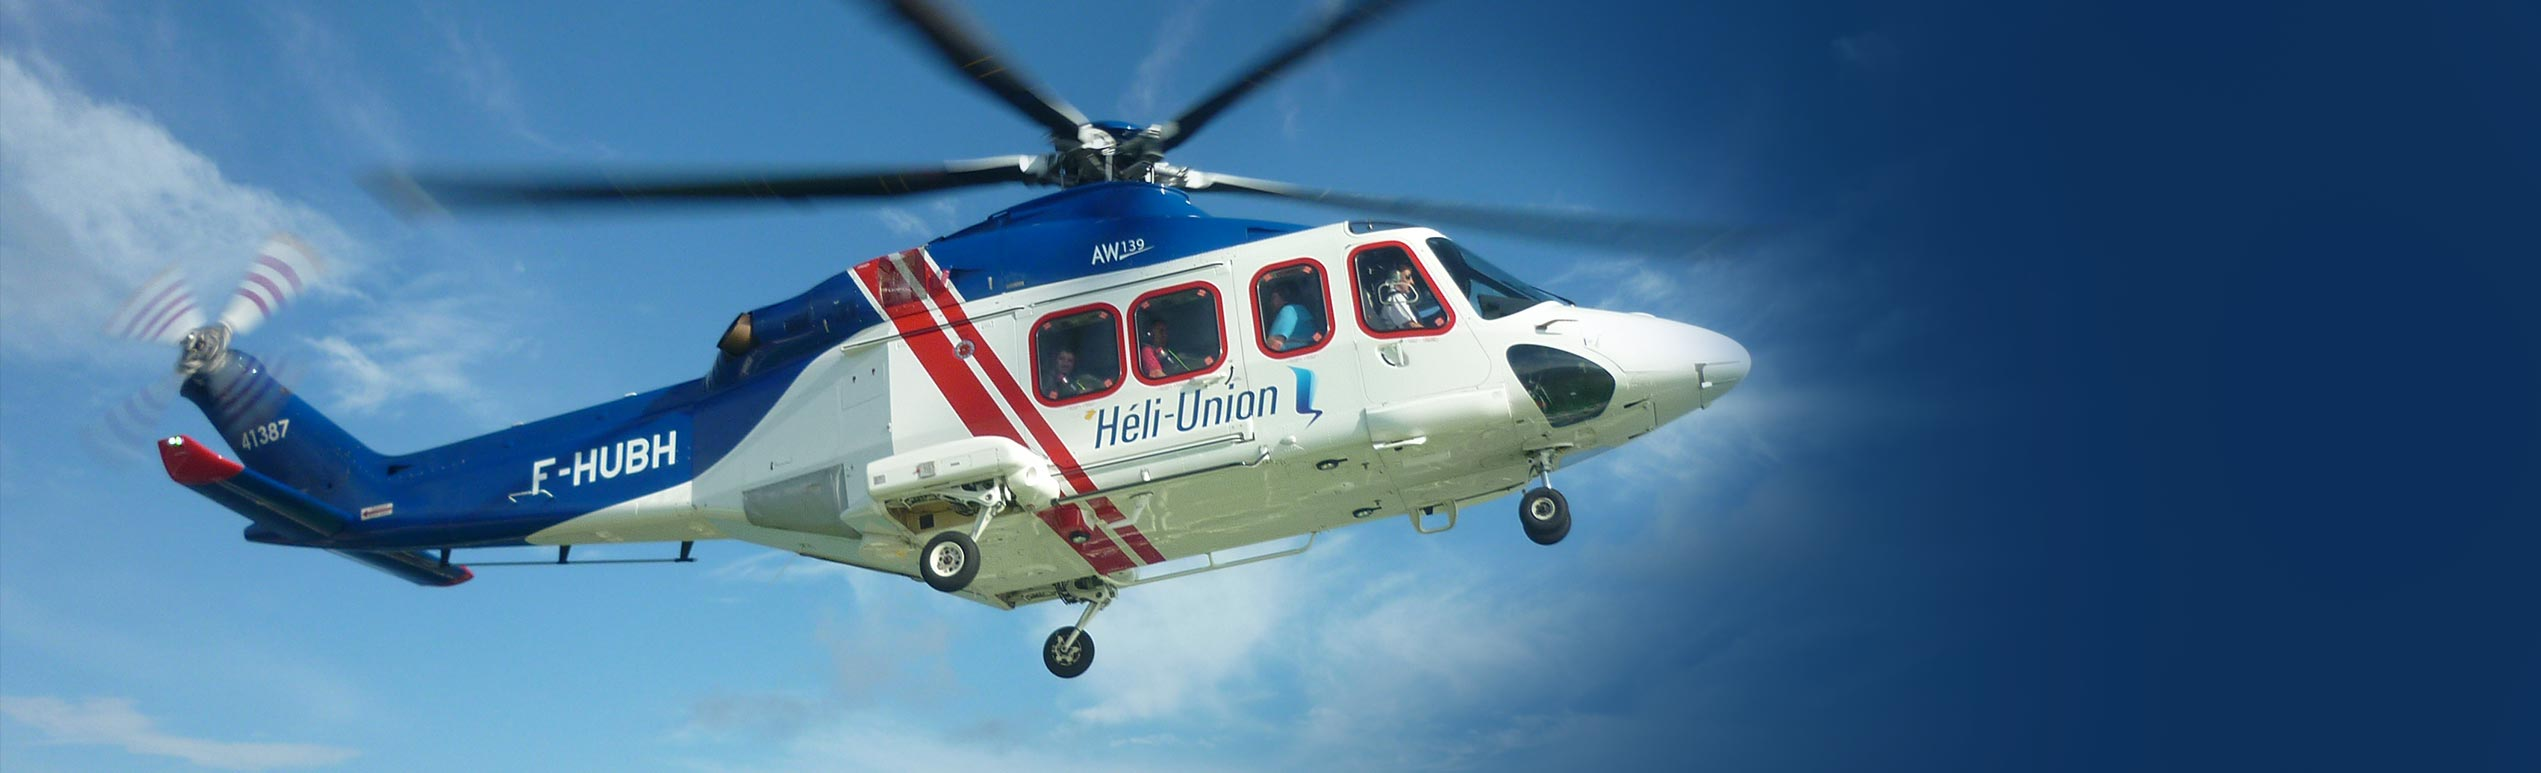 Heli-Union : offshore helicopter transport